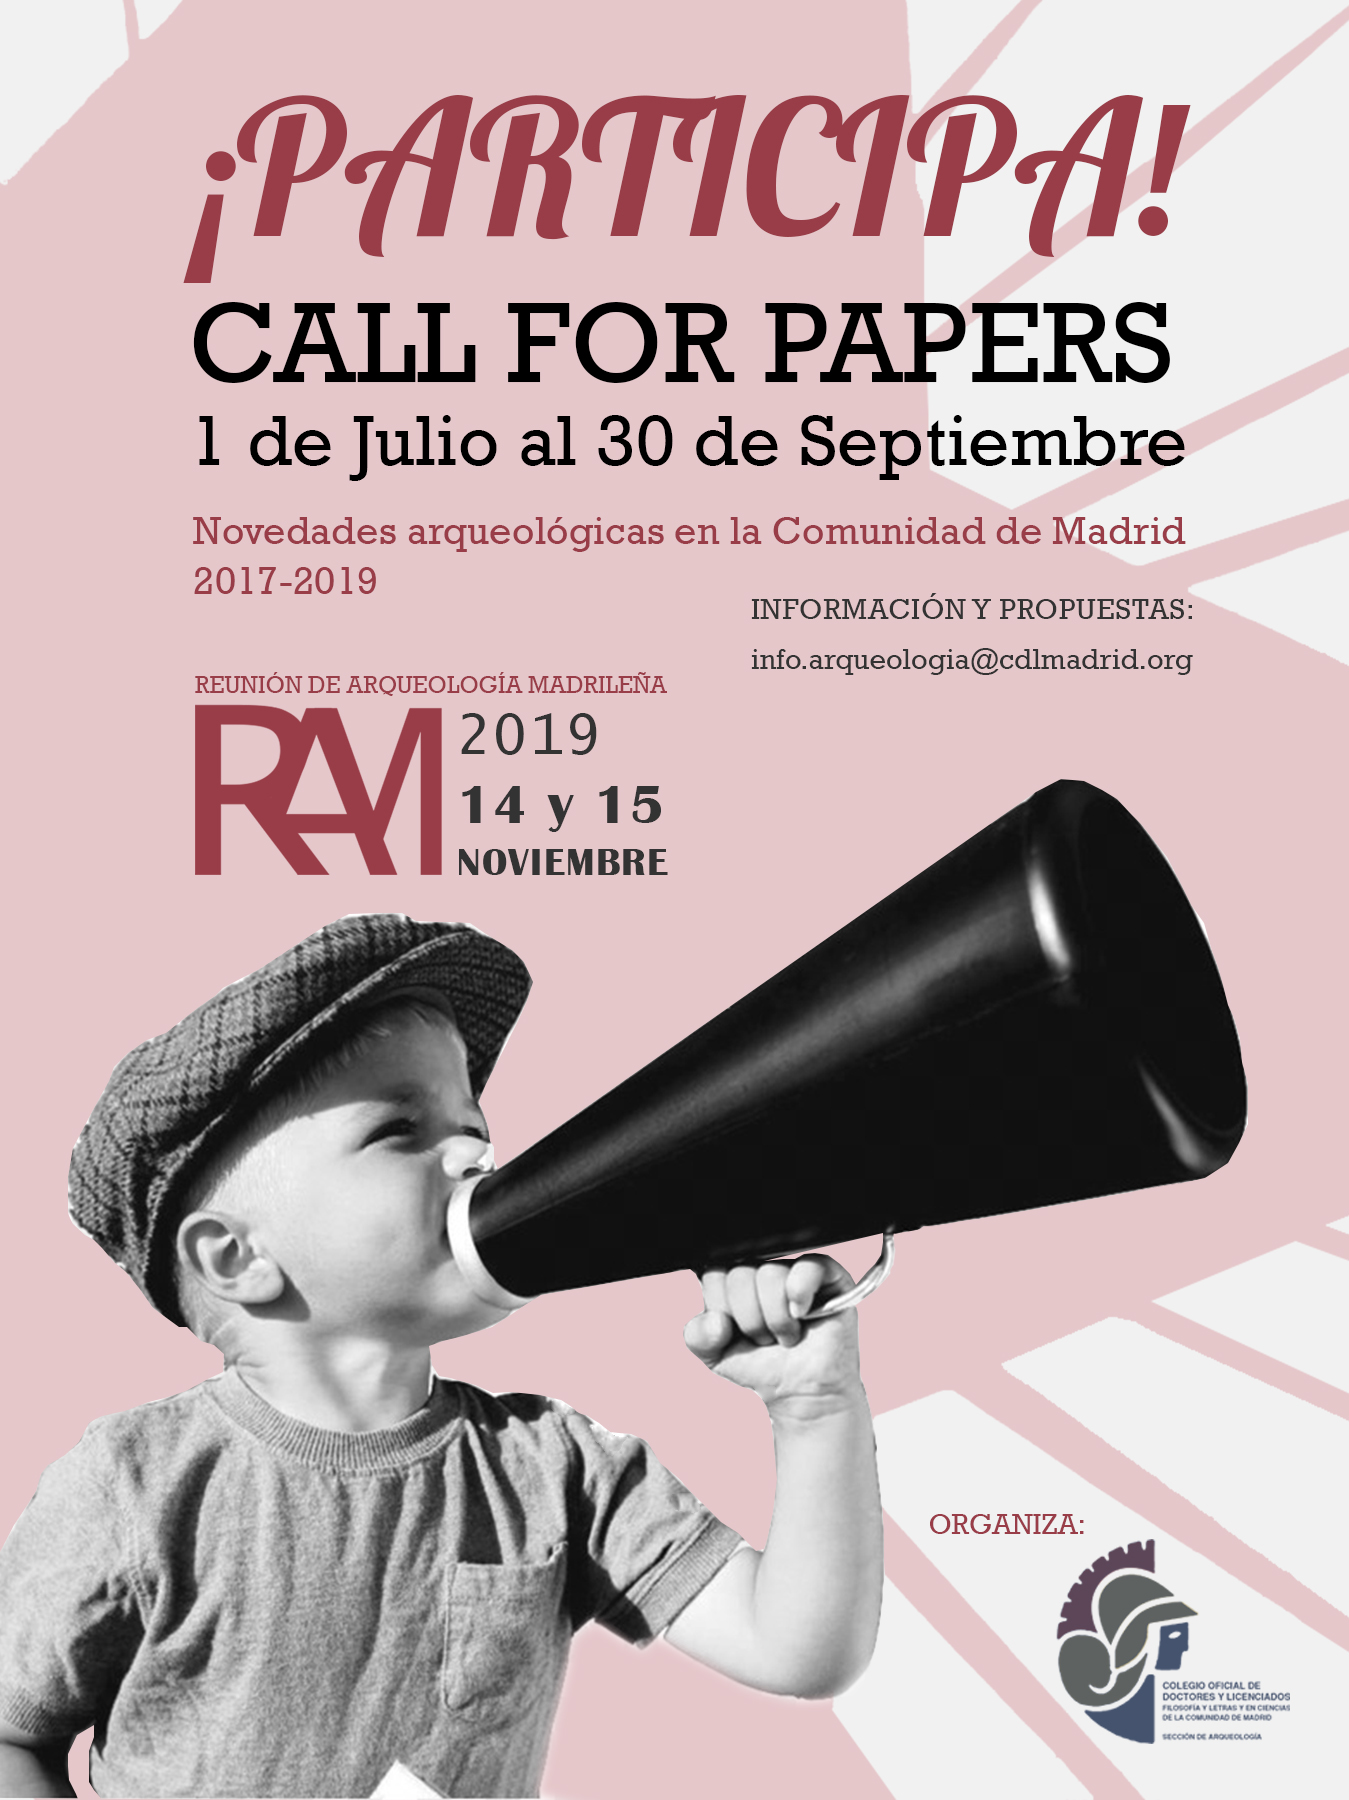 Reunión de Arqueología Madrileña 2019 – Call for papers –